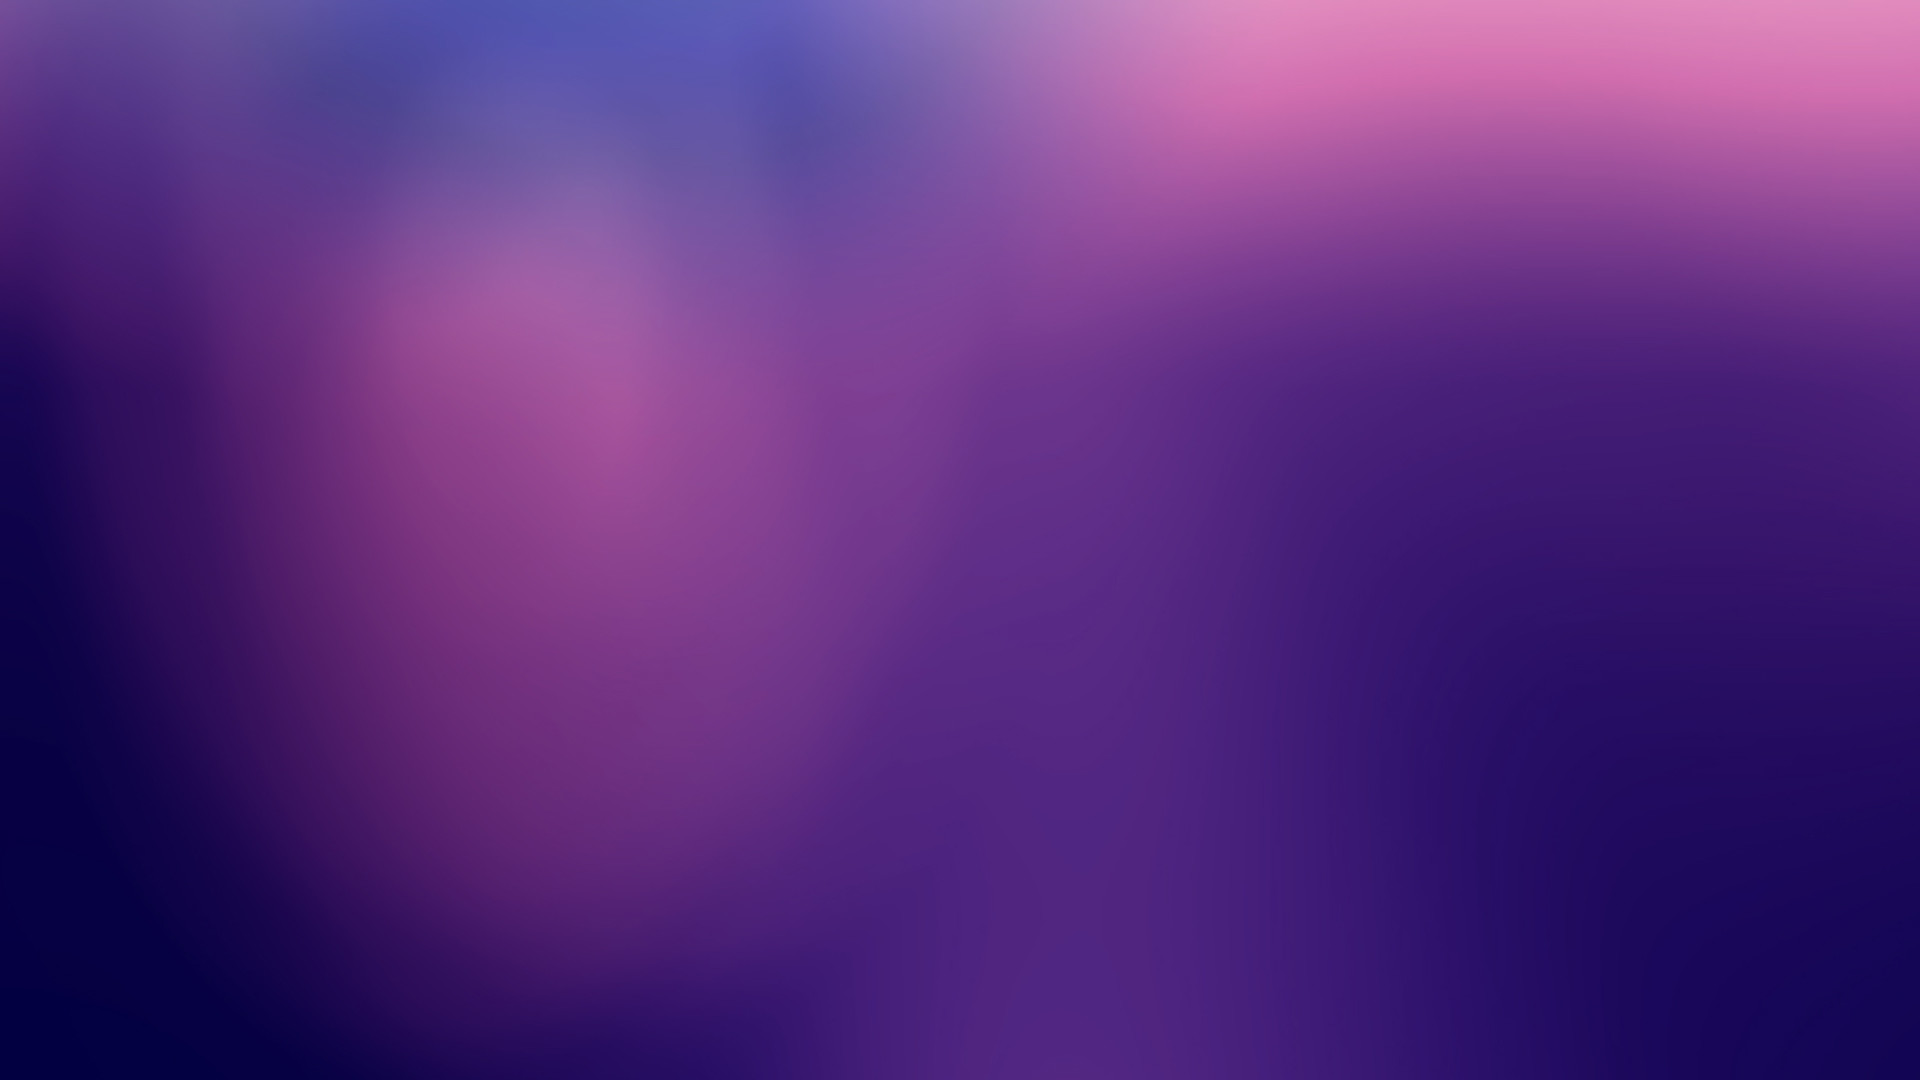 Orange And Purple Backgrounds 53 Images